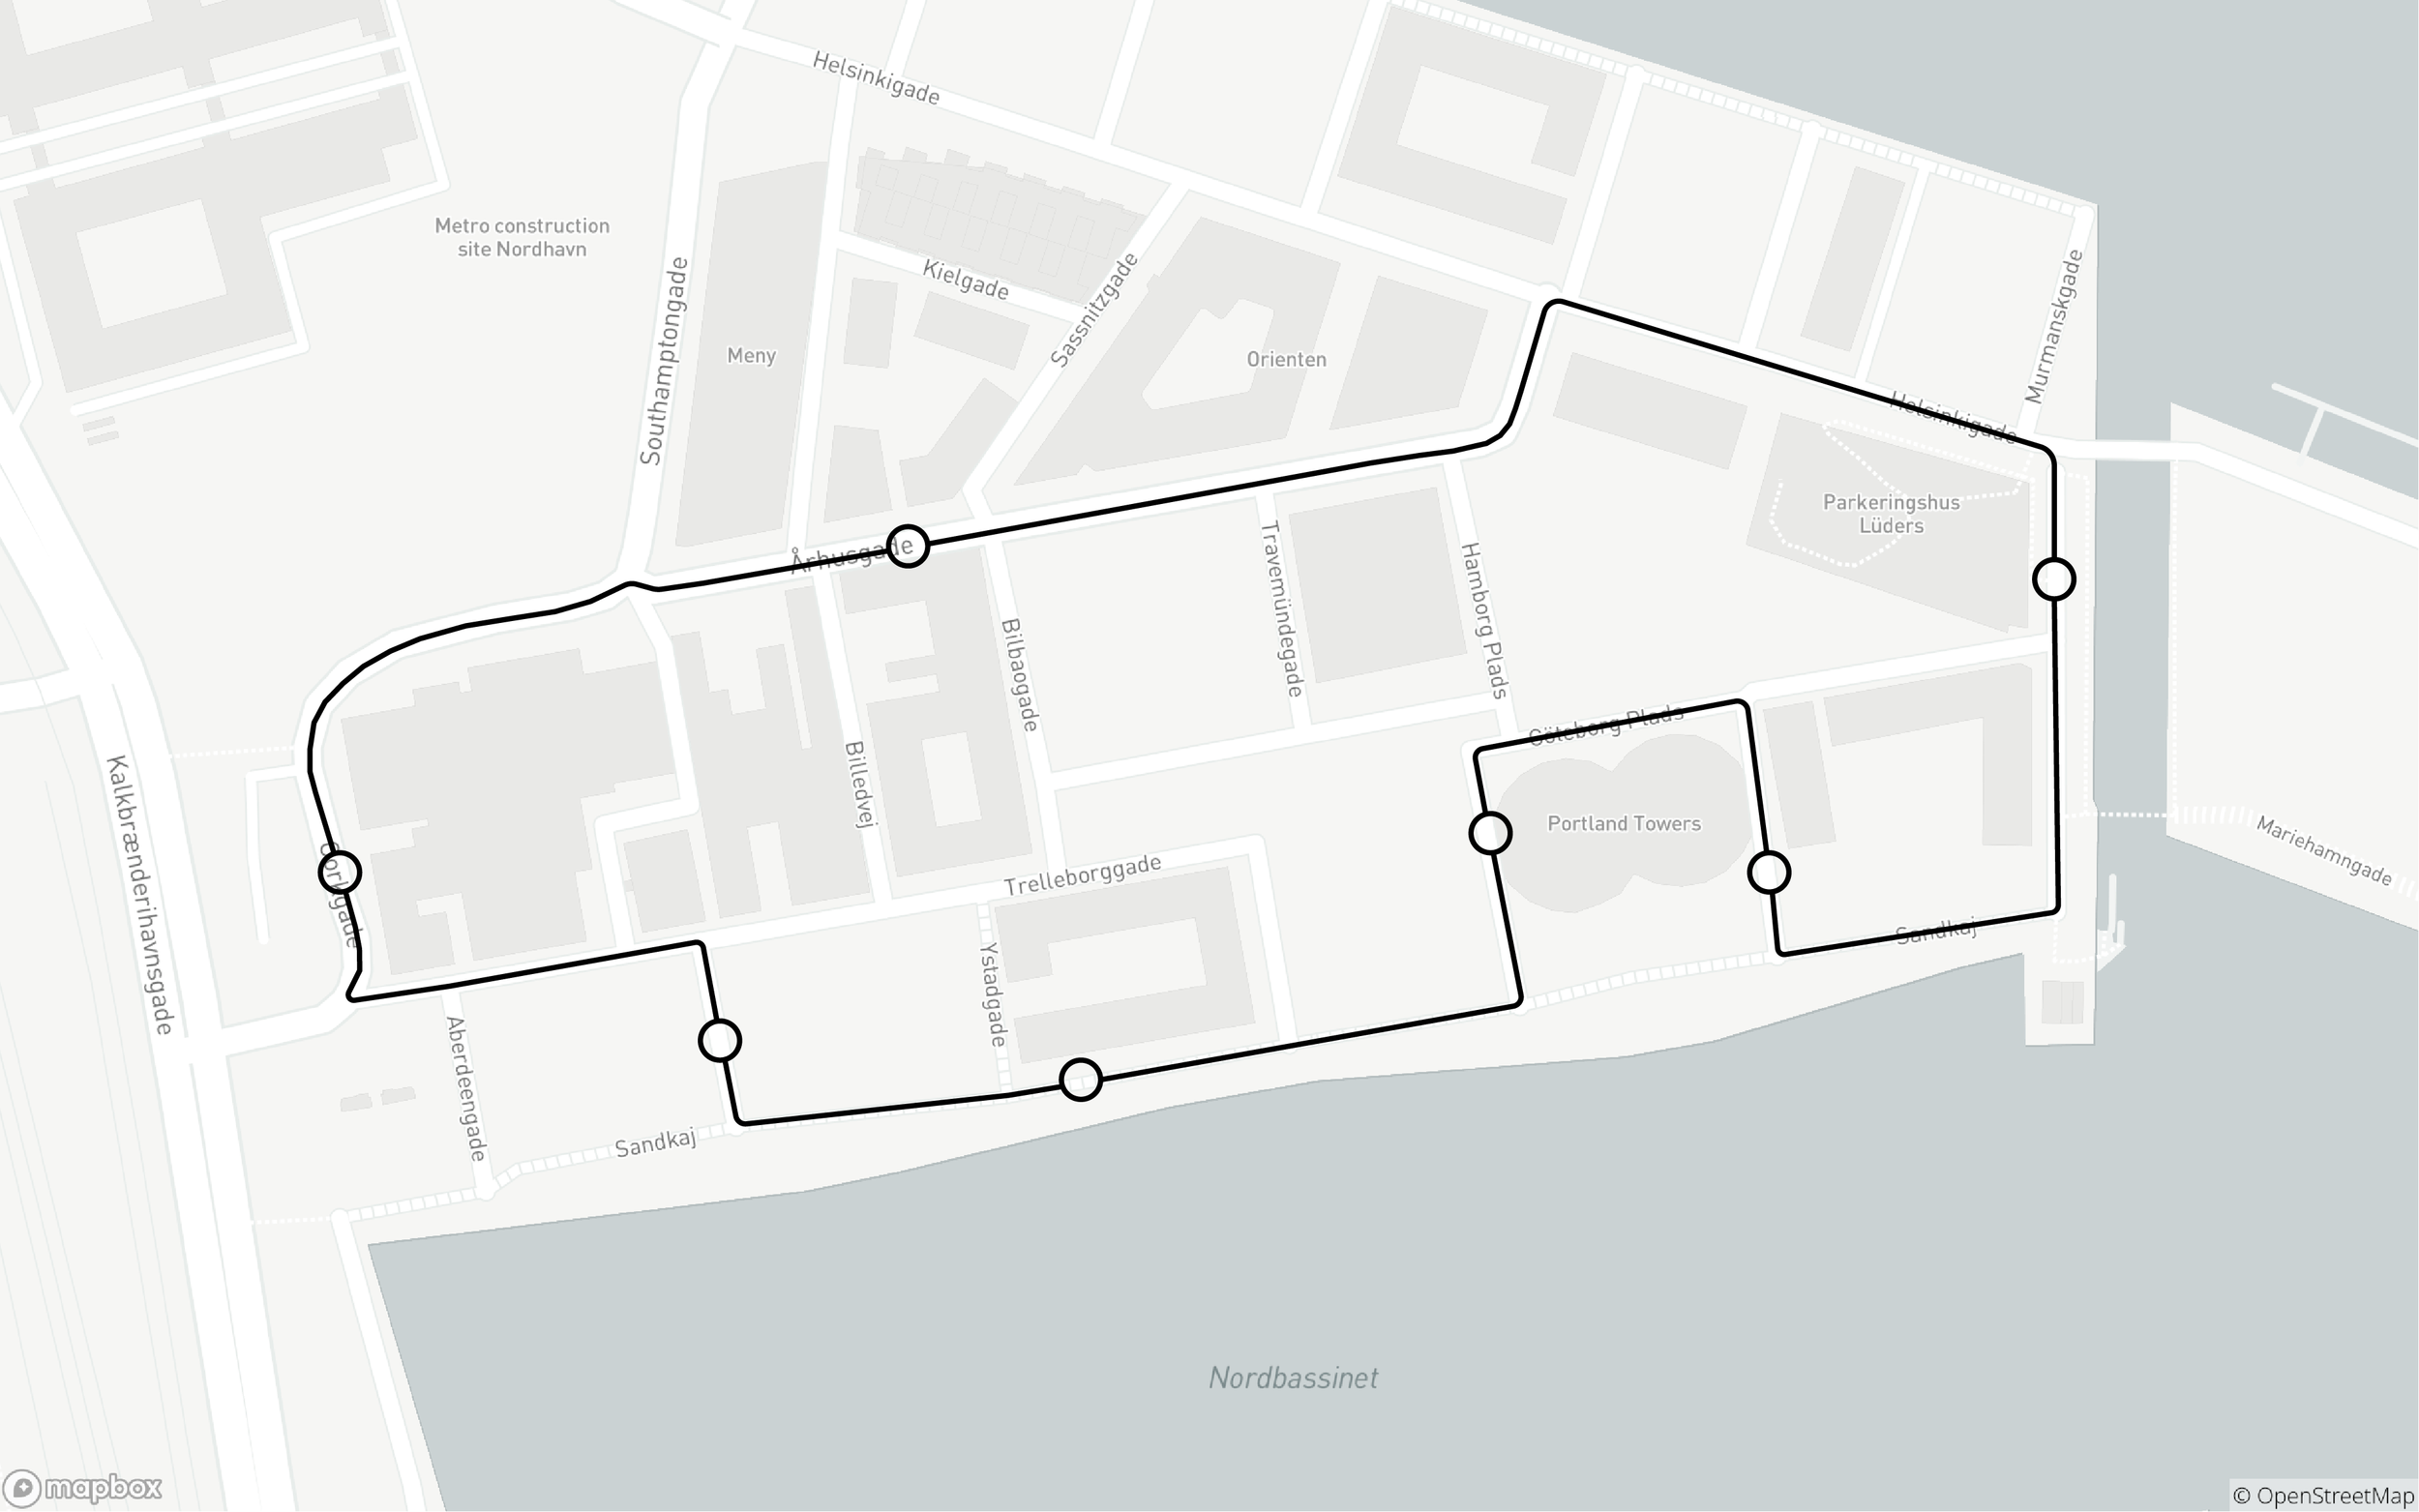 The route for the self-driving buses in Nordhavn.